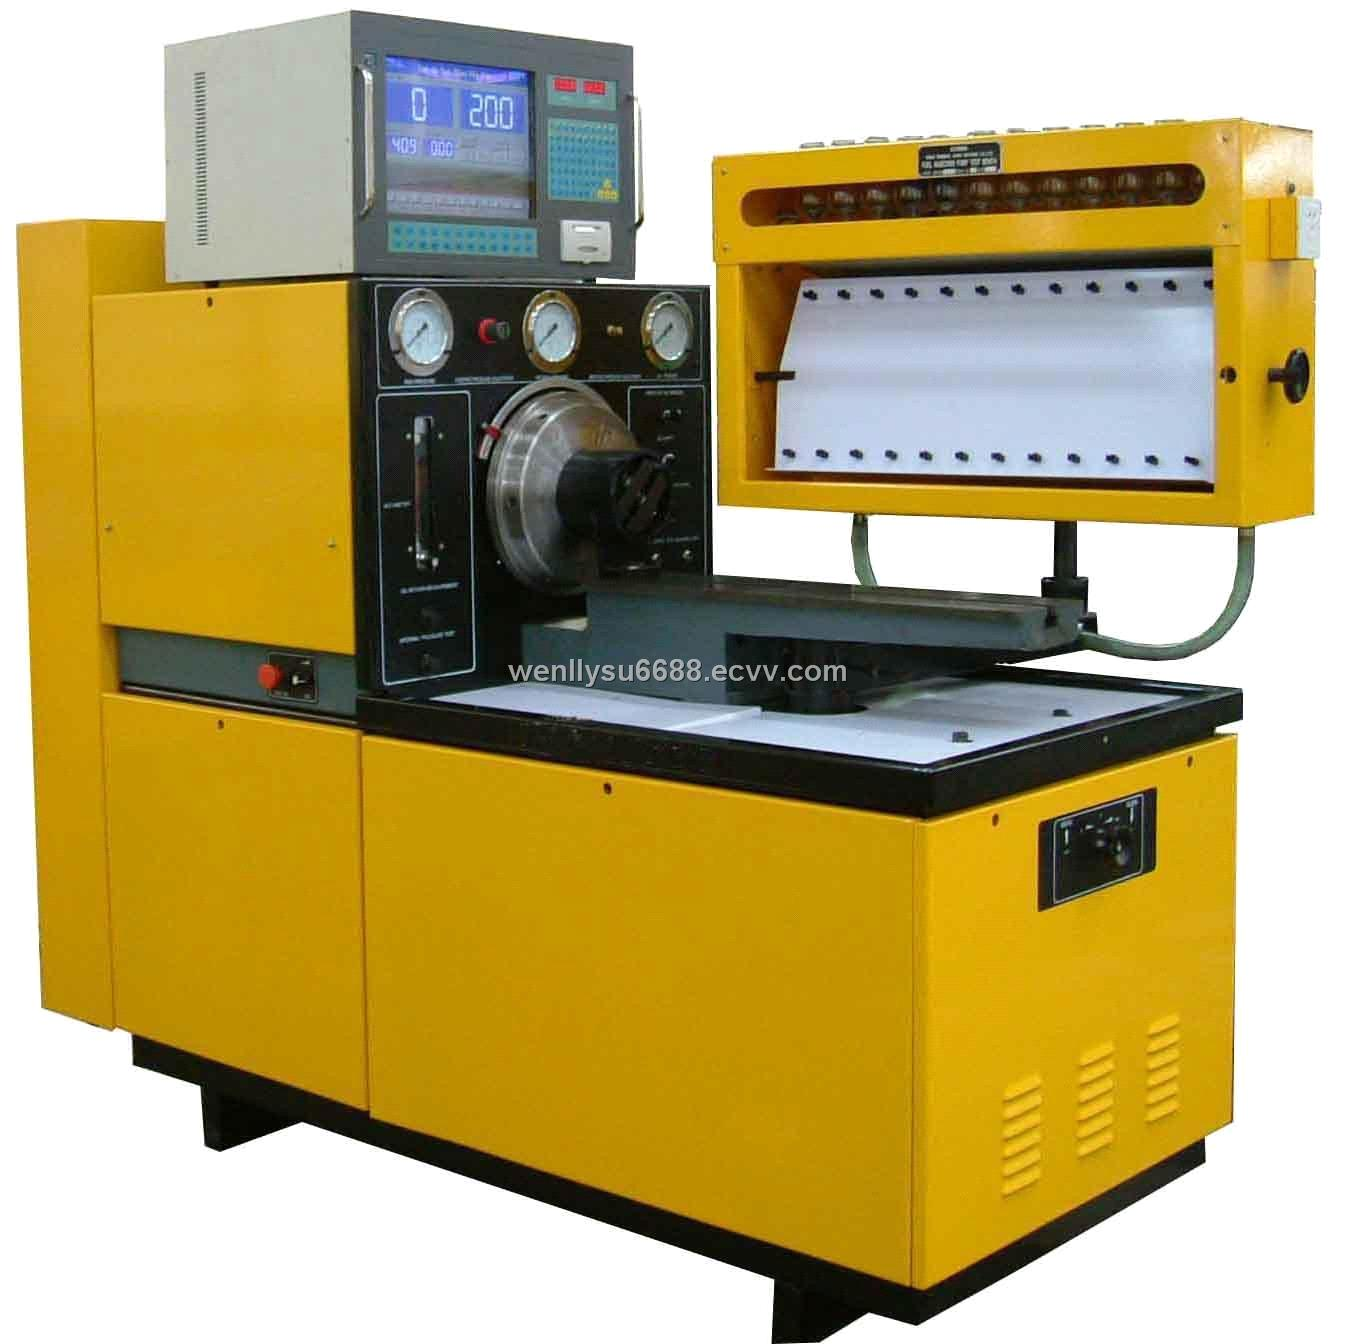 Computer Type Diesel Test Bench (12PSB) from China